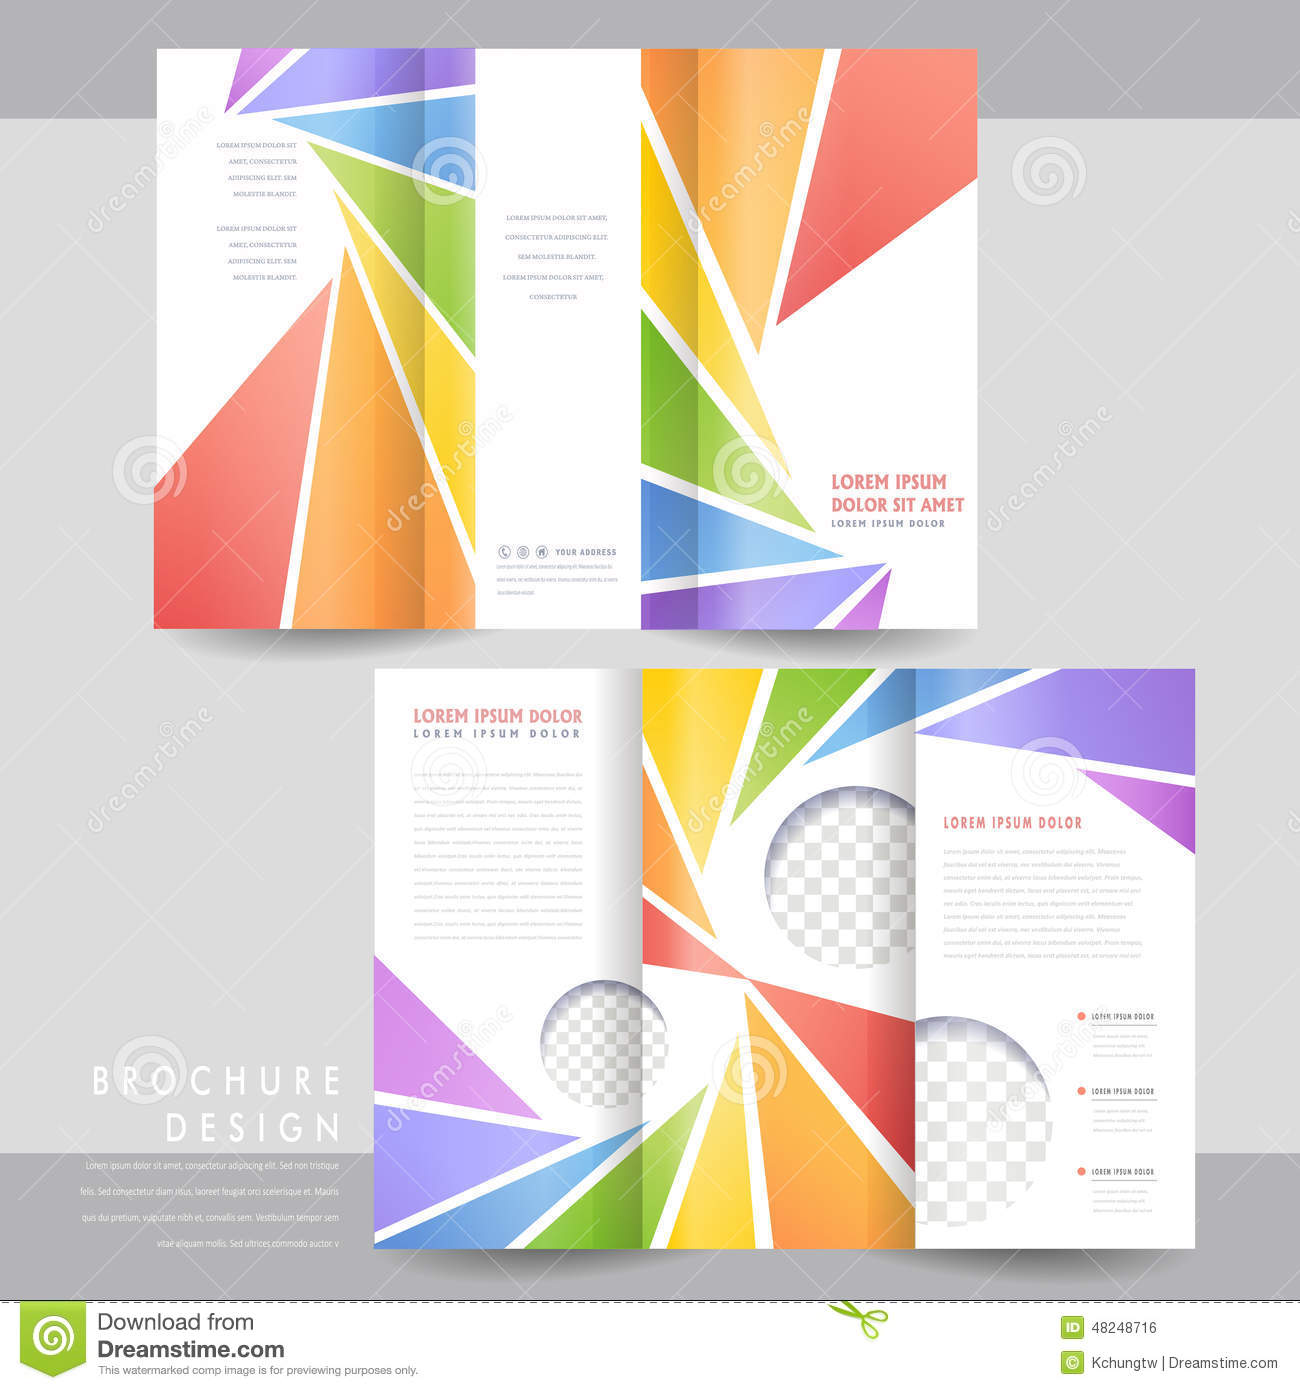 Colorful tri fold brochure template design stock vector for Brochure folding templates